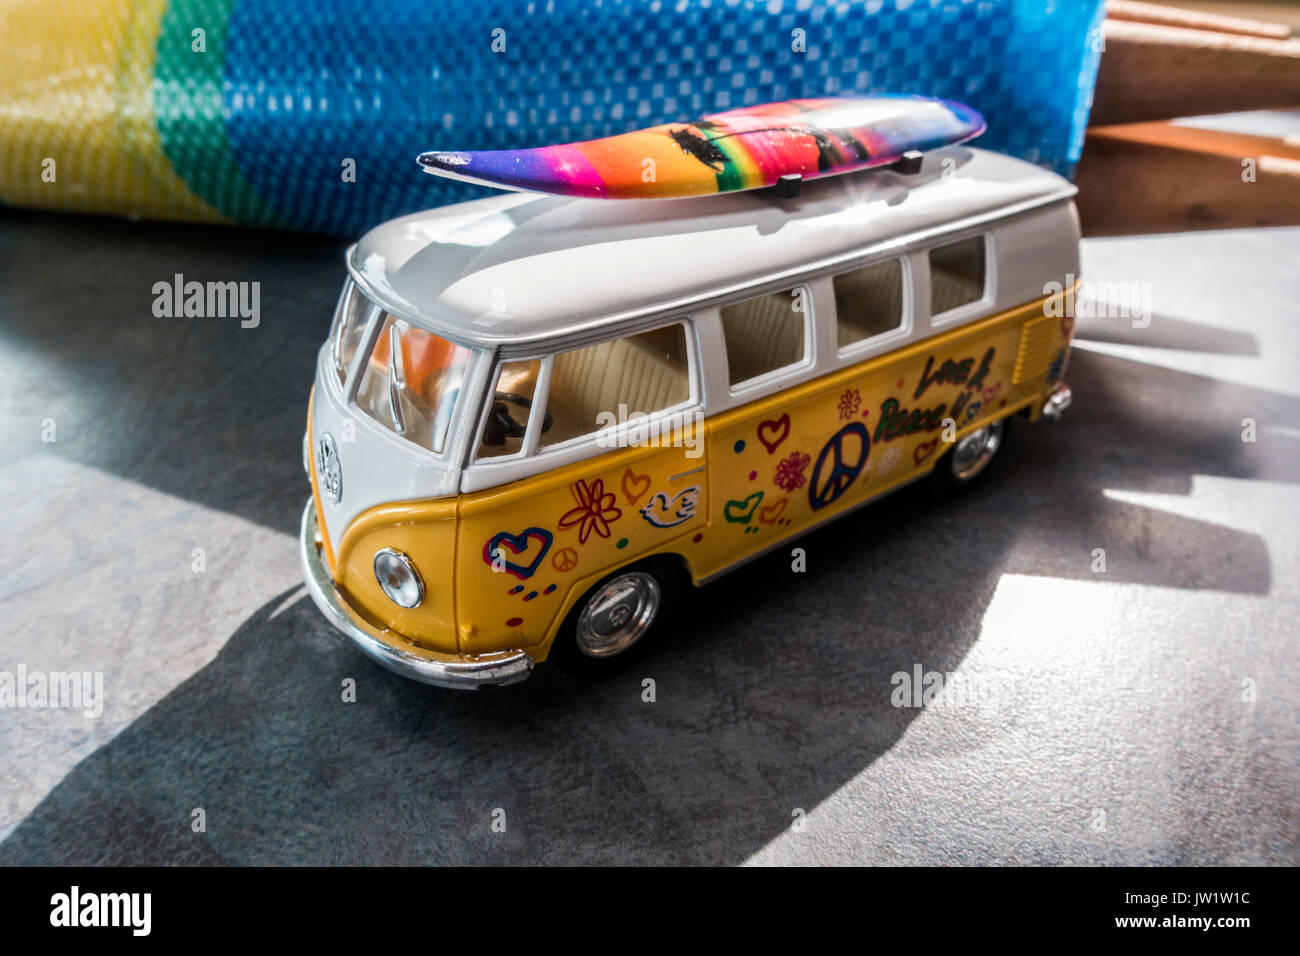 Motorhoming holiday concept with a model VW campervan and surboard on roof, next to a windbreak. - Stock Image